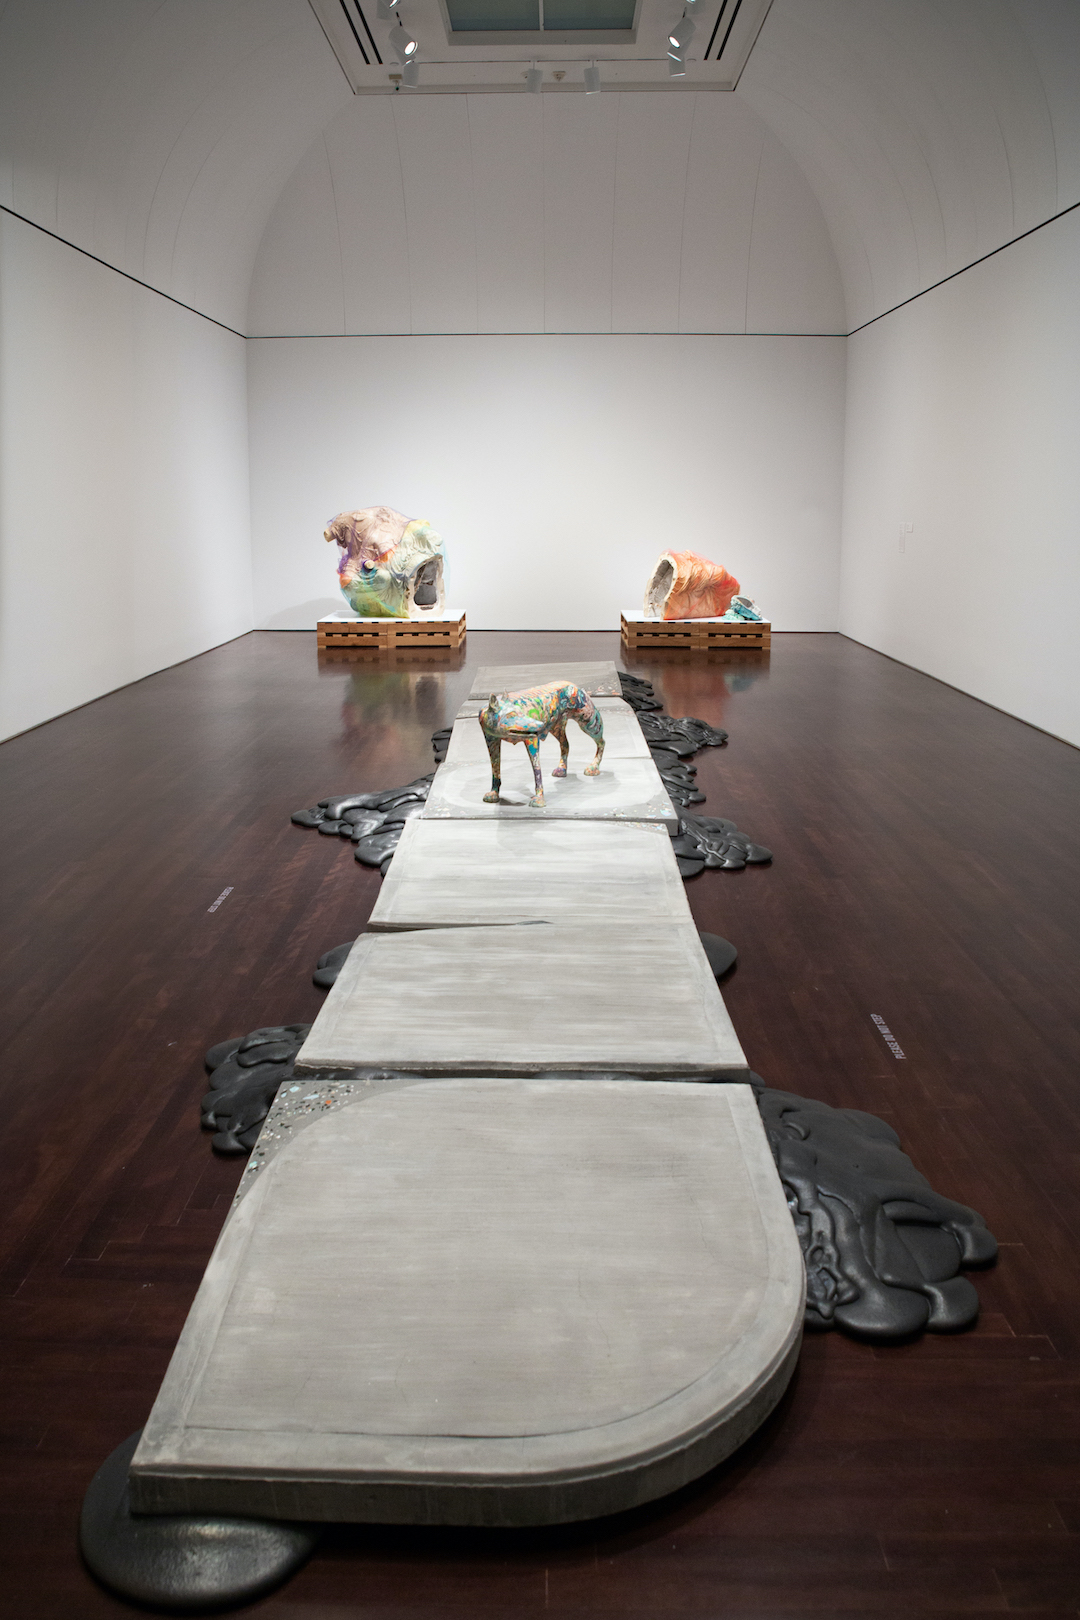 Installation view of Lily Cox-Richard: She-Wolf + Lower Figs. at the Blanton Museum of Art. Photo by Manny Alcalá.